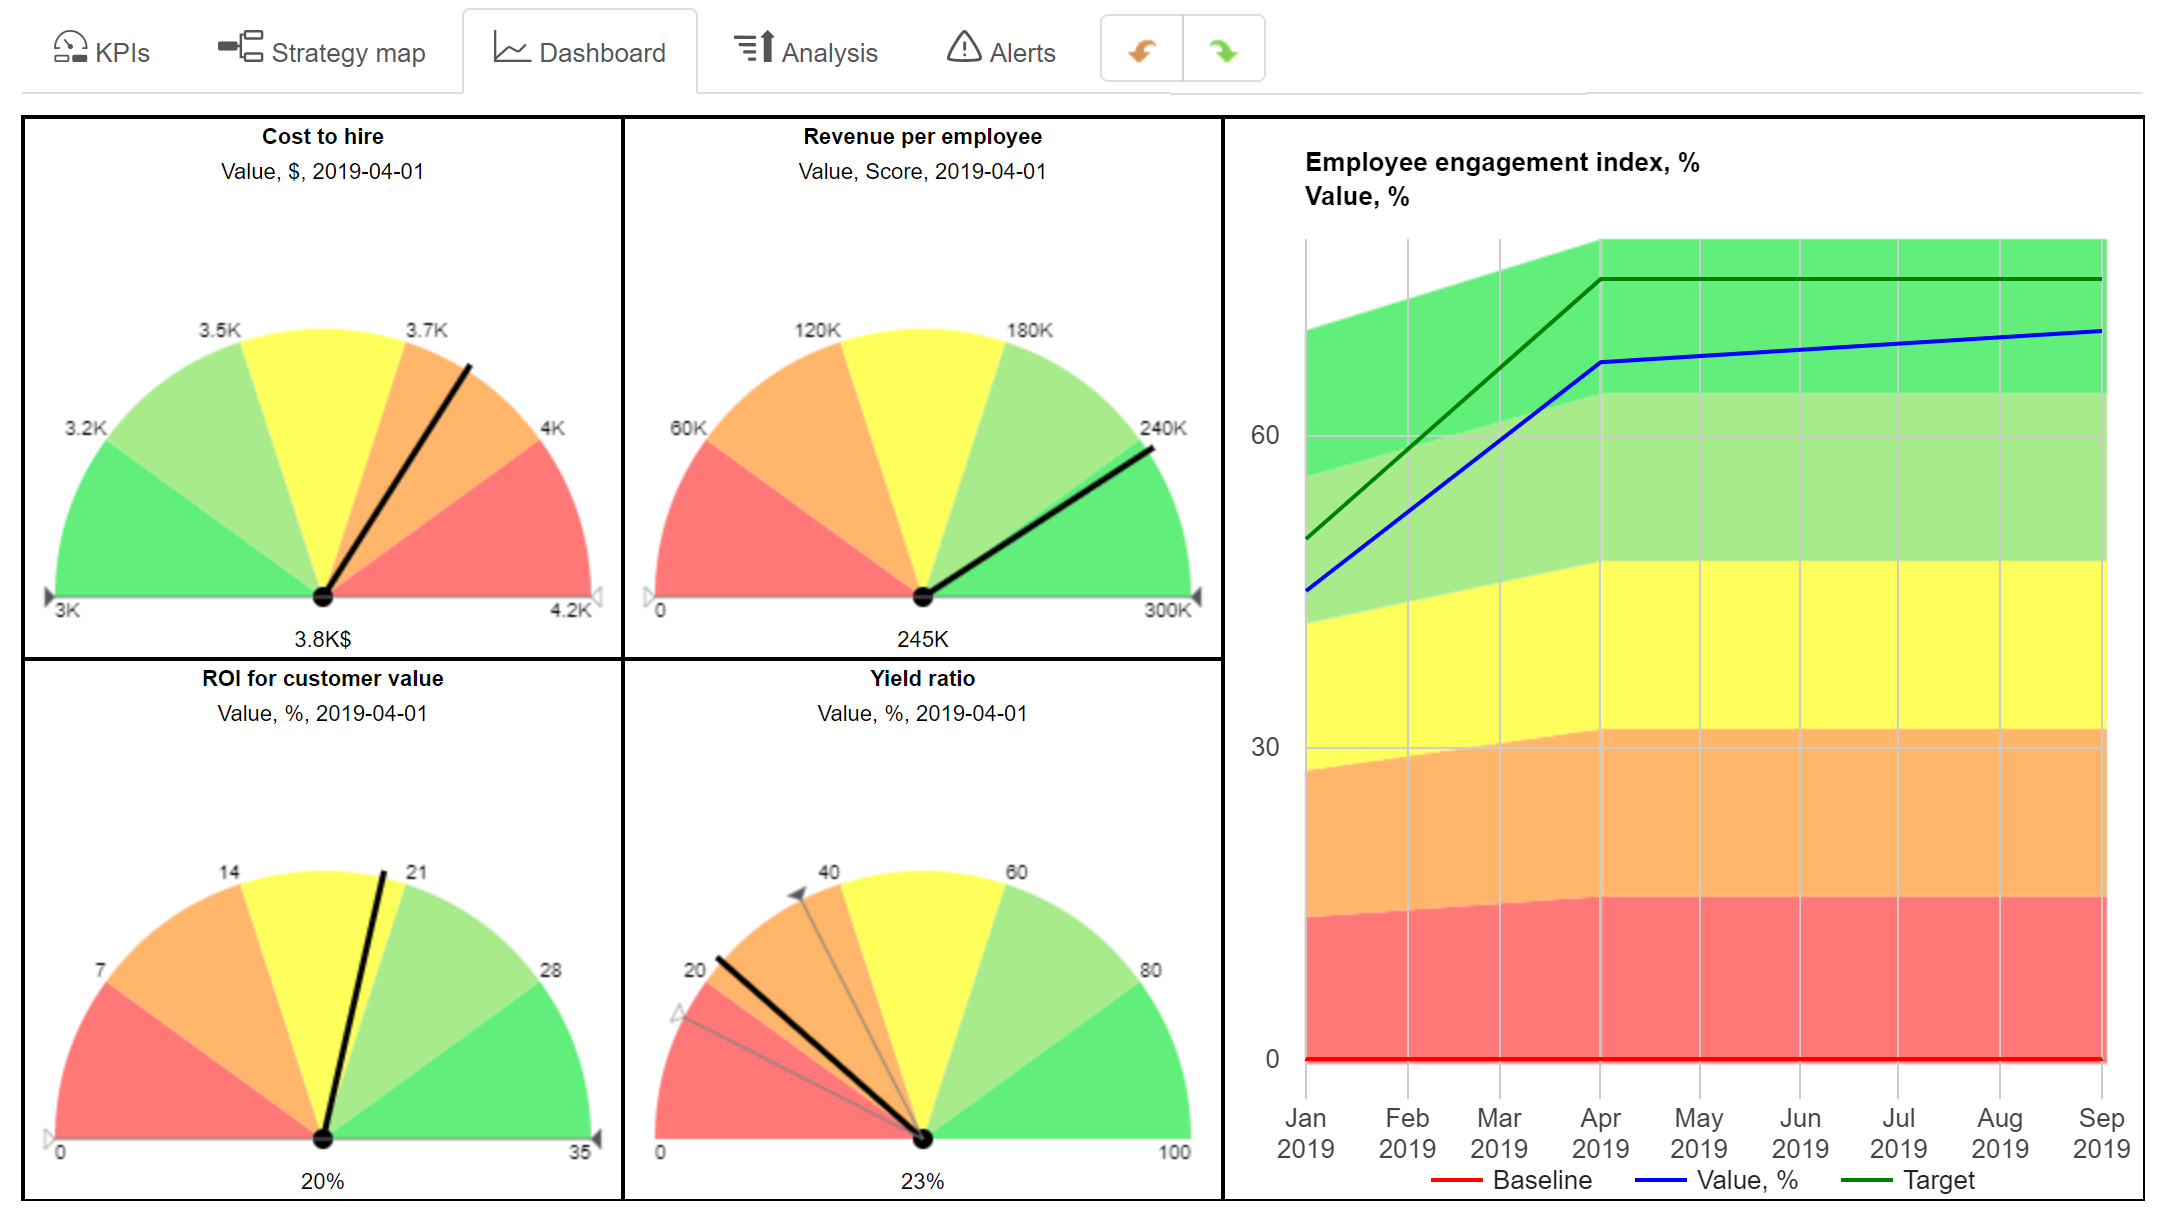 HR Scorecard Dashboard with Key Metrics